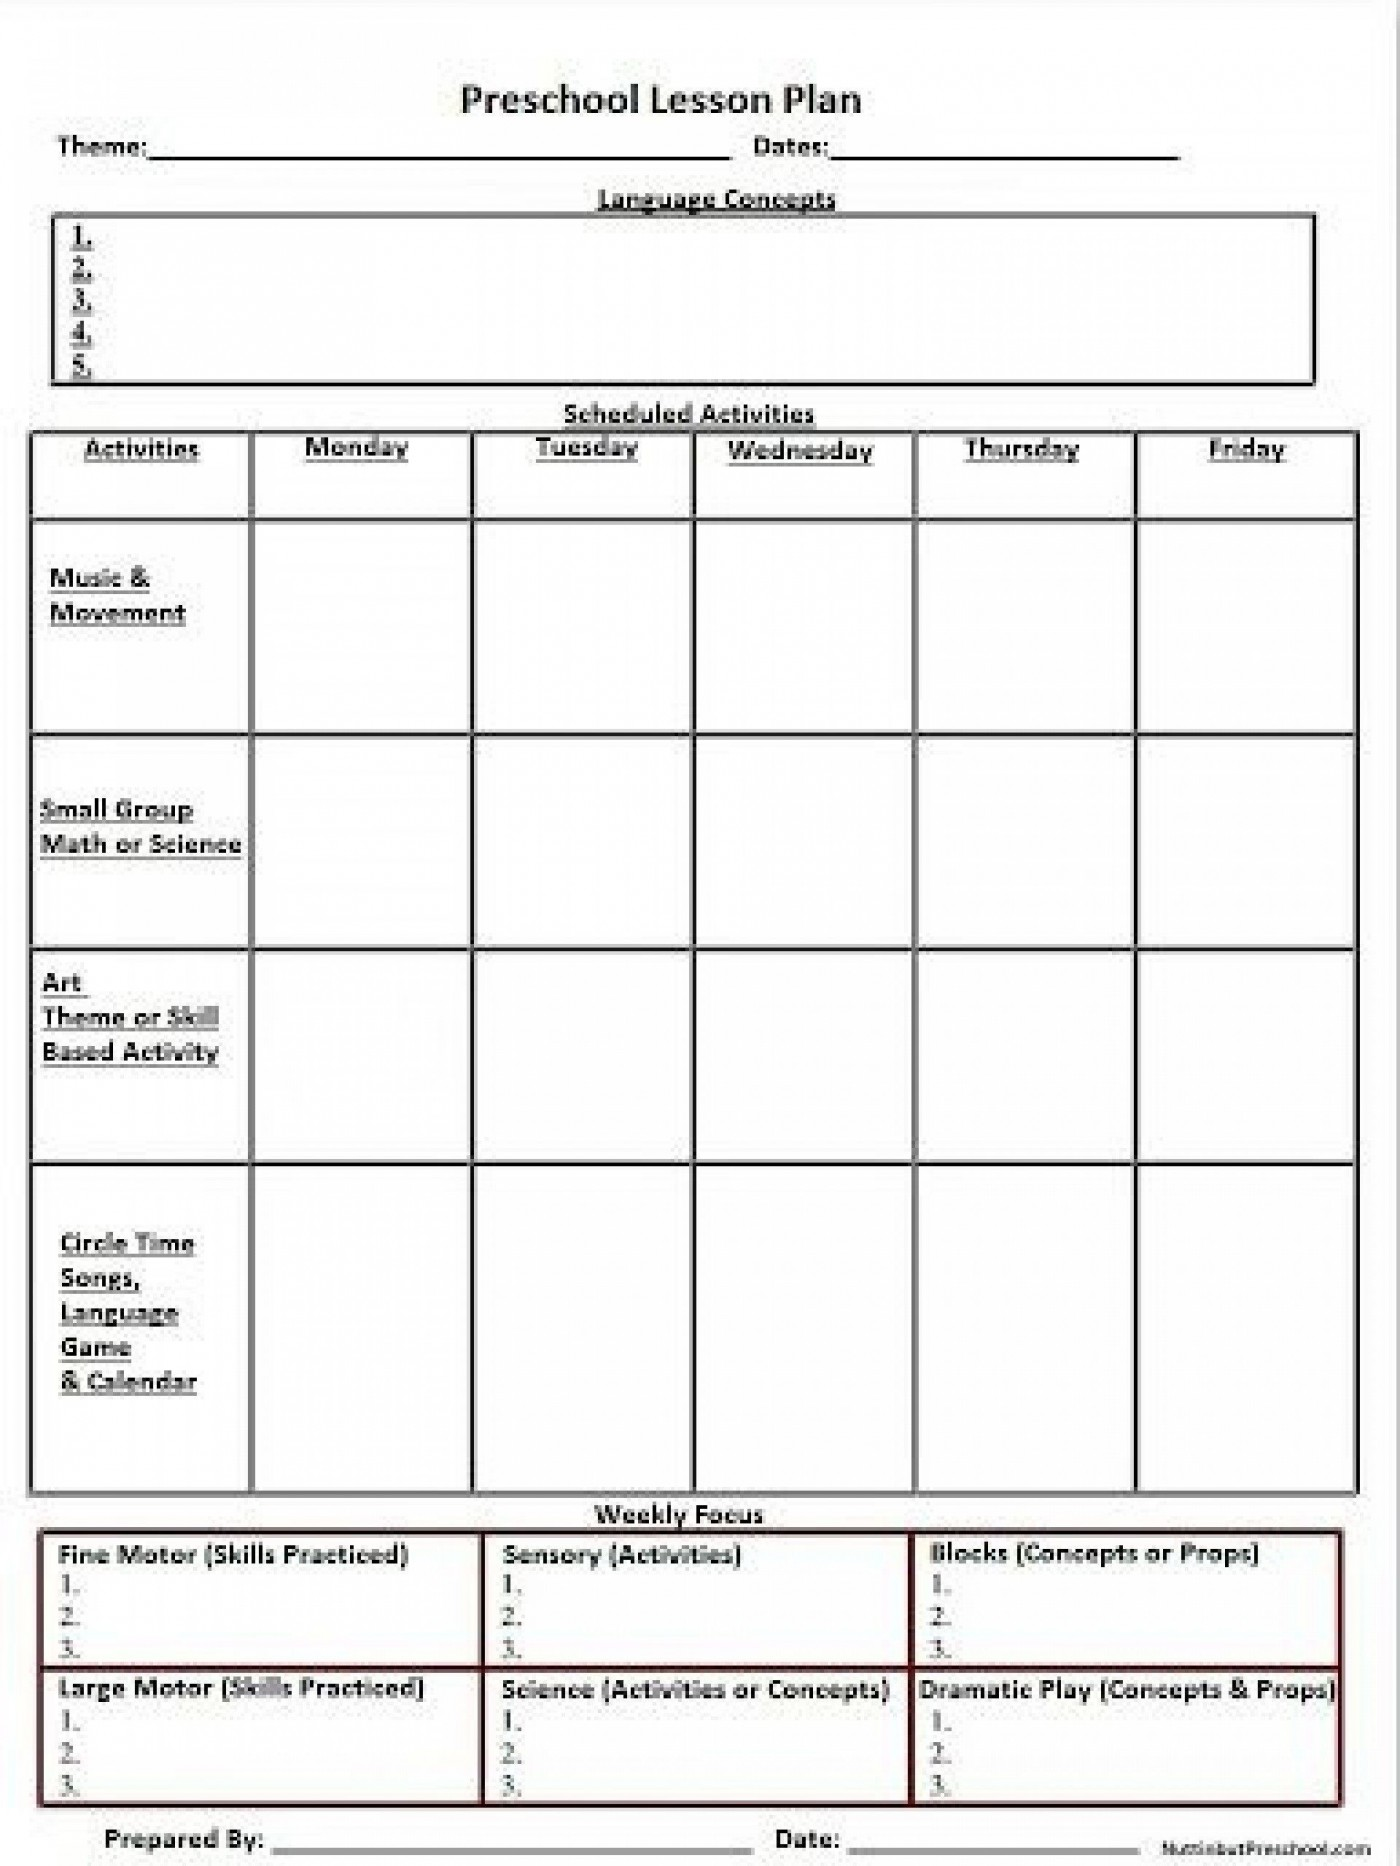 007 Shocking Weekly Lesson Plan Template High School Def  Free Example For English Pdf Of Junior1400